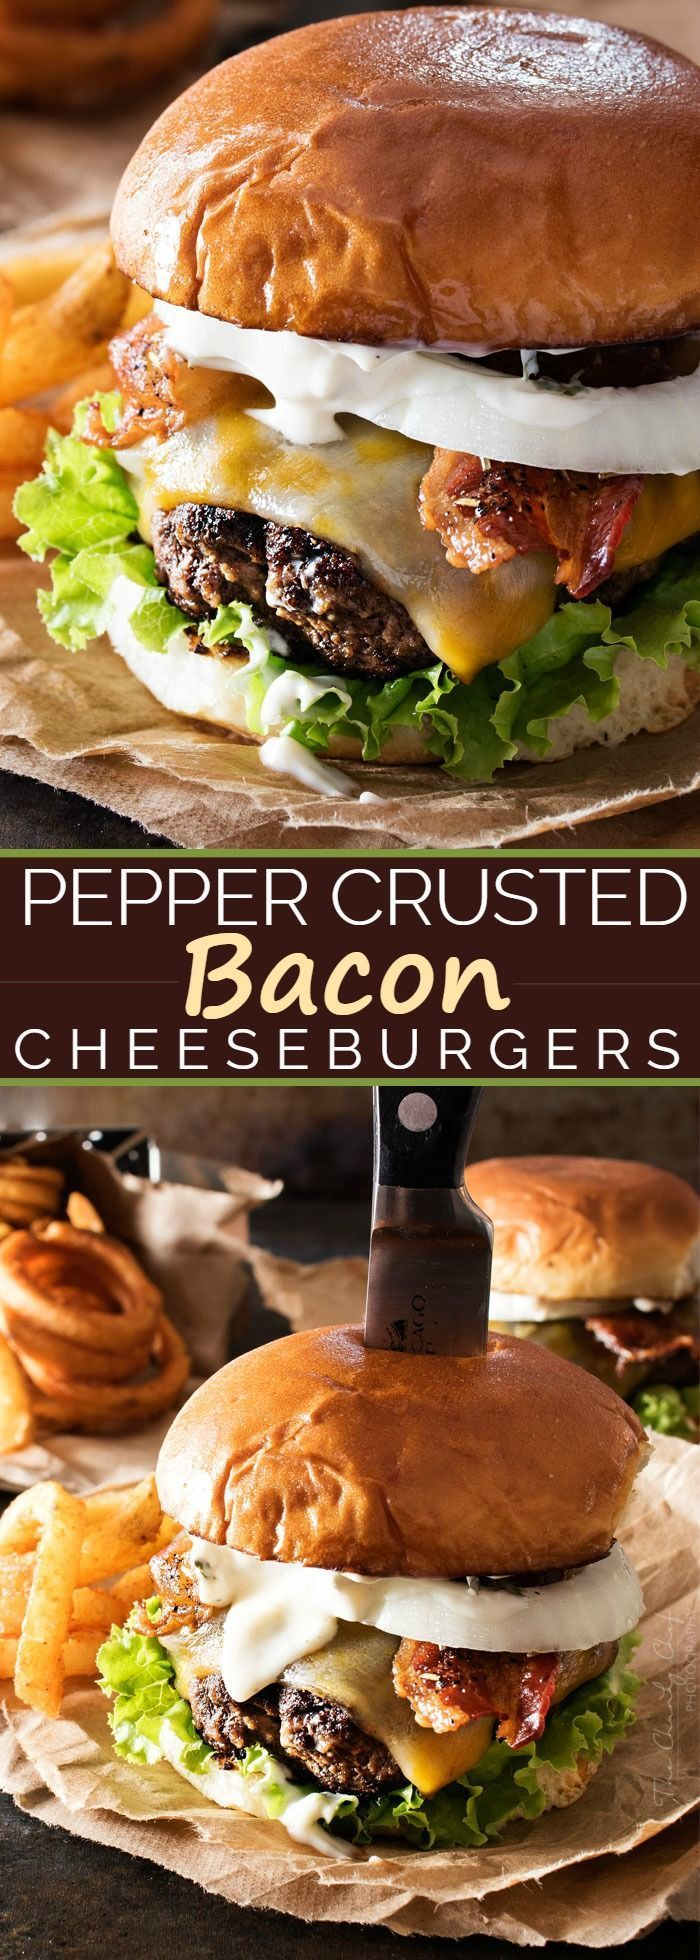 "Pepper Crusted Bacon Cheeseburgers | Nothing beats a great burger. Except delicious pepper crusted bacon cheeseburgers, slathered with a garlic aioli! Make burger night one to remember! | <a href="""" rel=""nofollow"" target=""_blank""></a>"